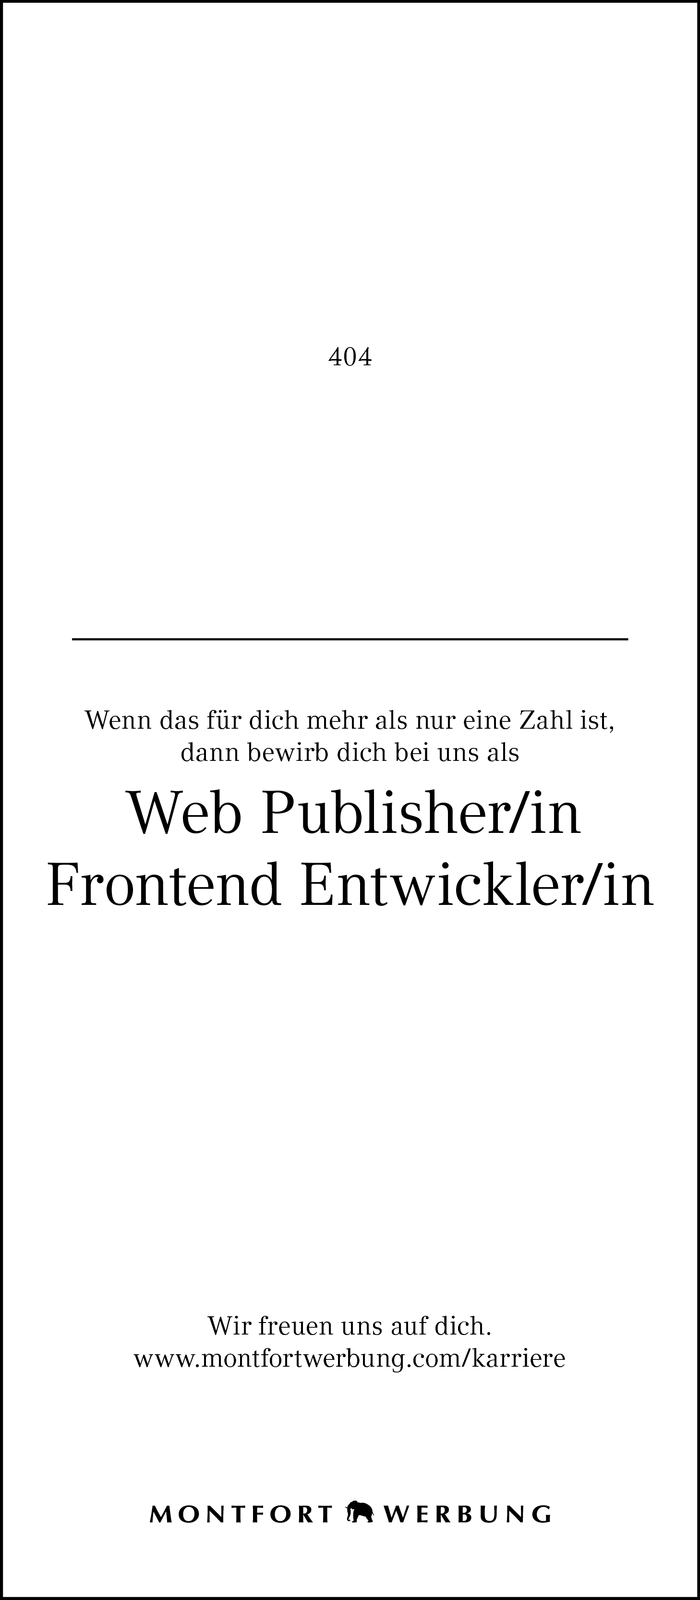 Web Publisher/in | Frontend Entwickler/in